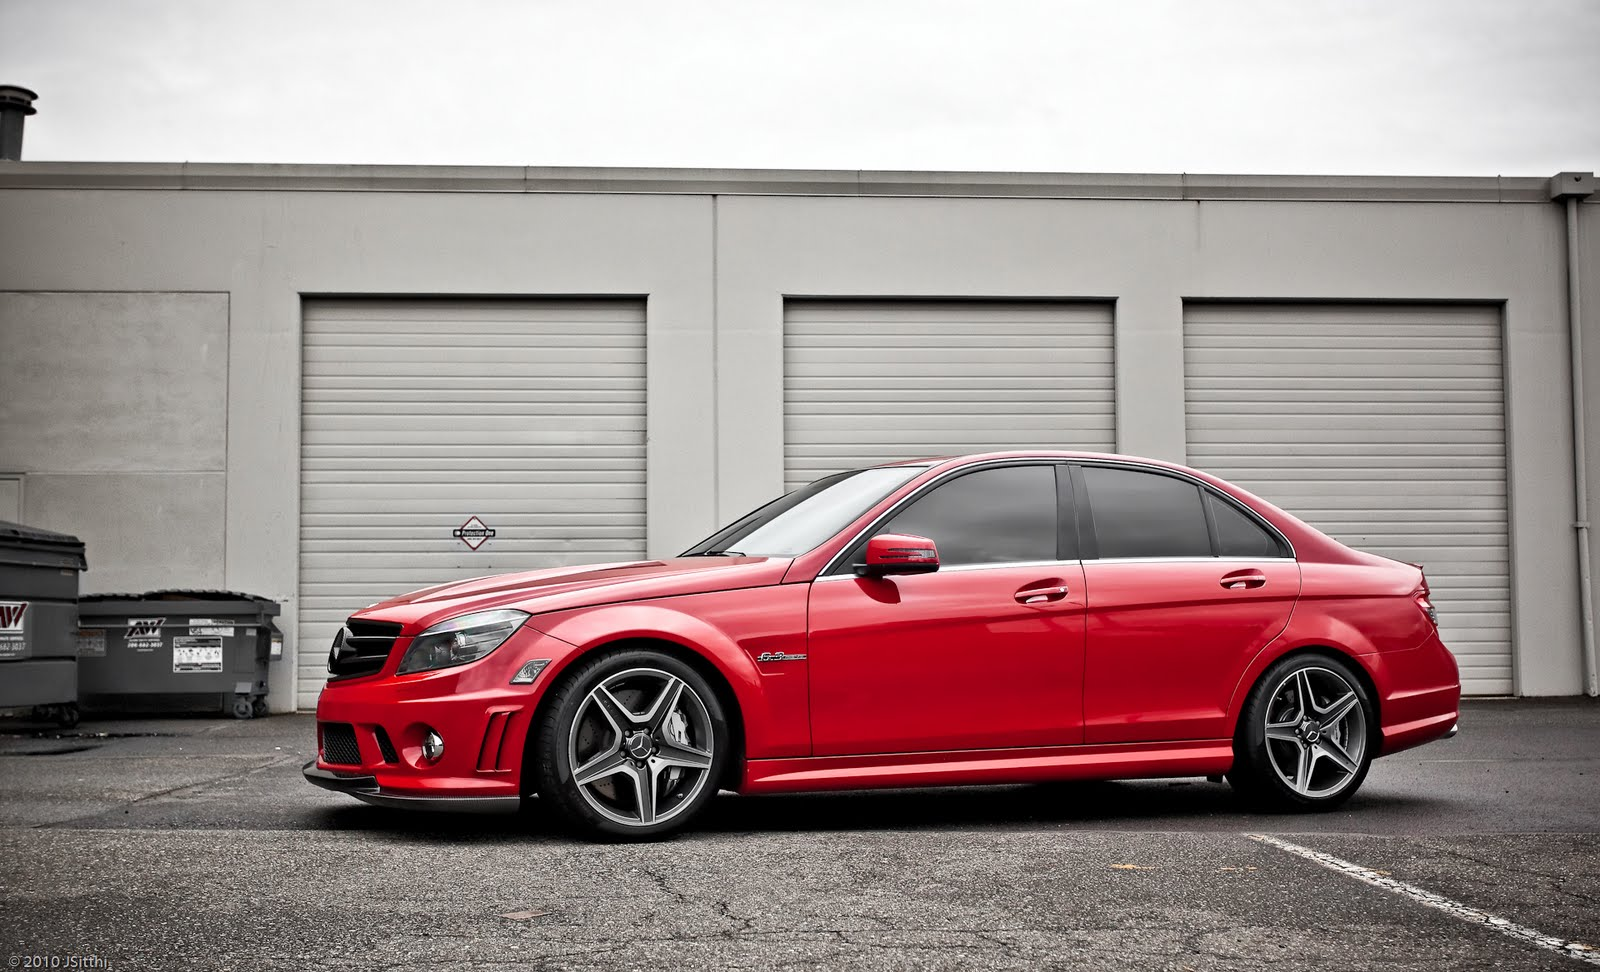 Mercedes_c63_amg_w204_red_1 jpg 1600 972 mercedes c class w204 pinterest mercedes benz and cars